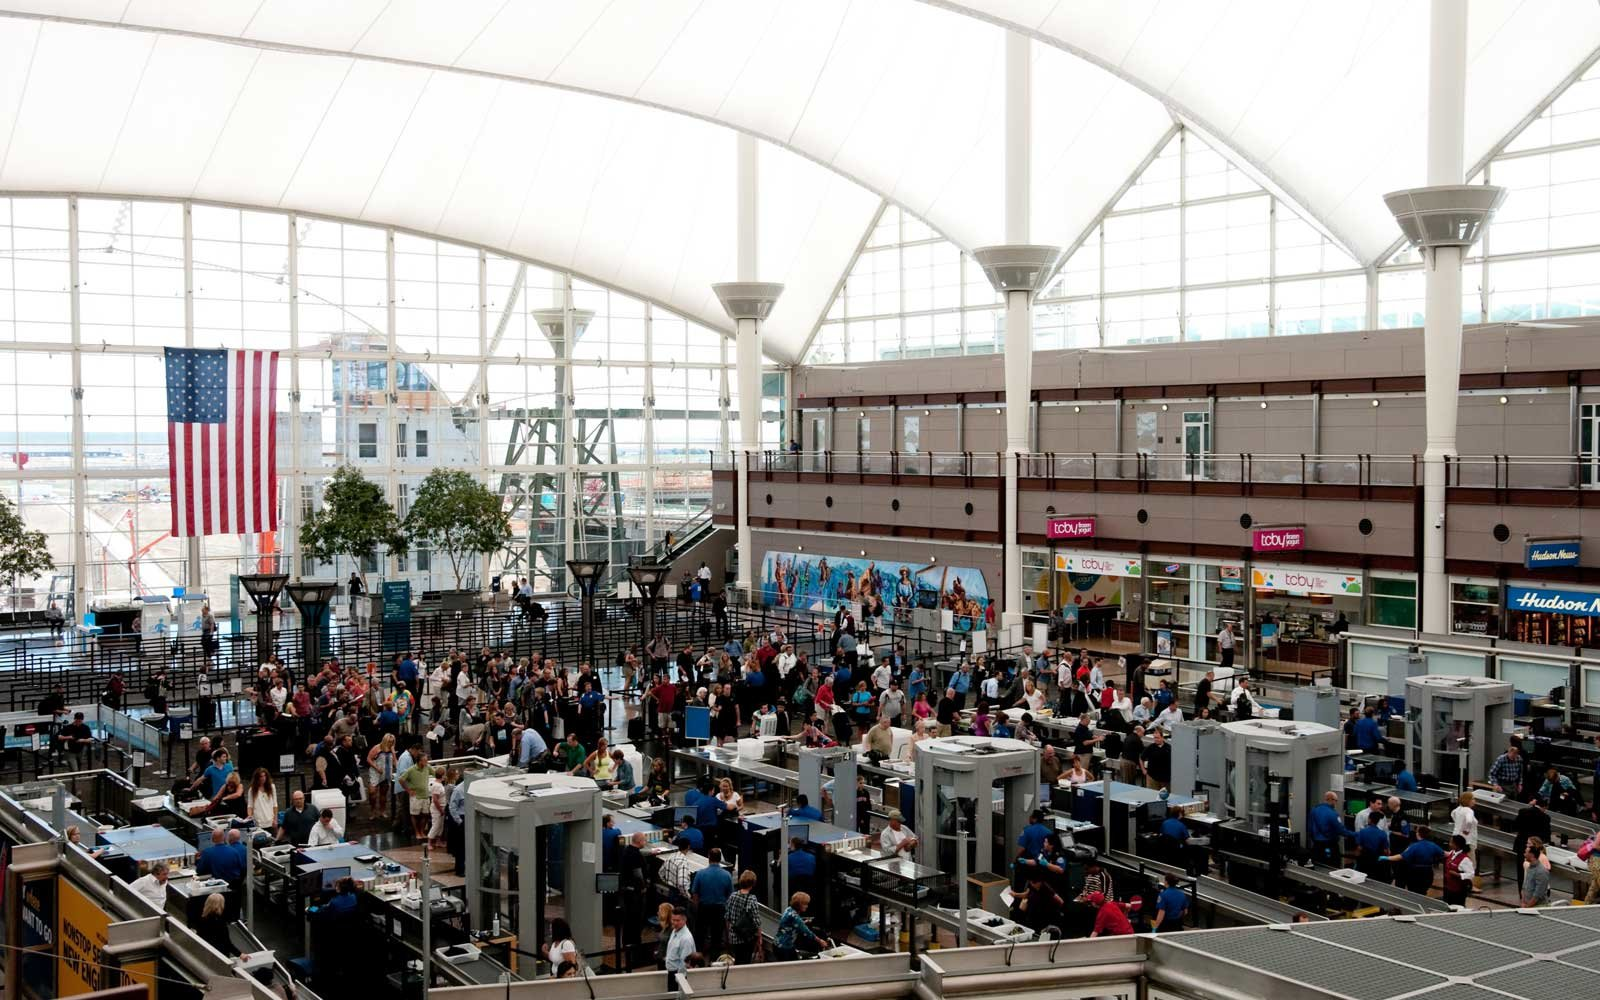 A record number of travelers are expected in U.S. airports this Spring Break season.